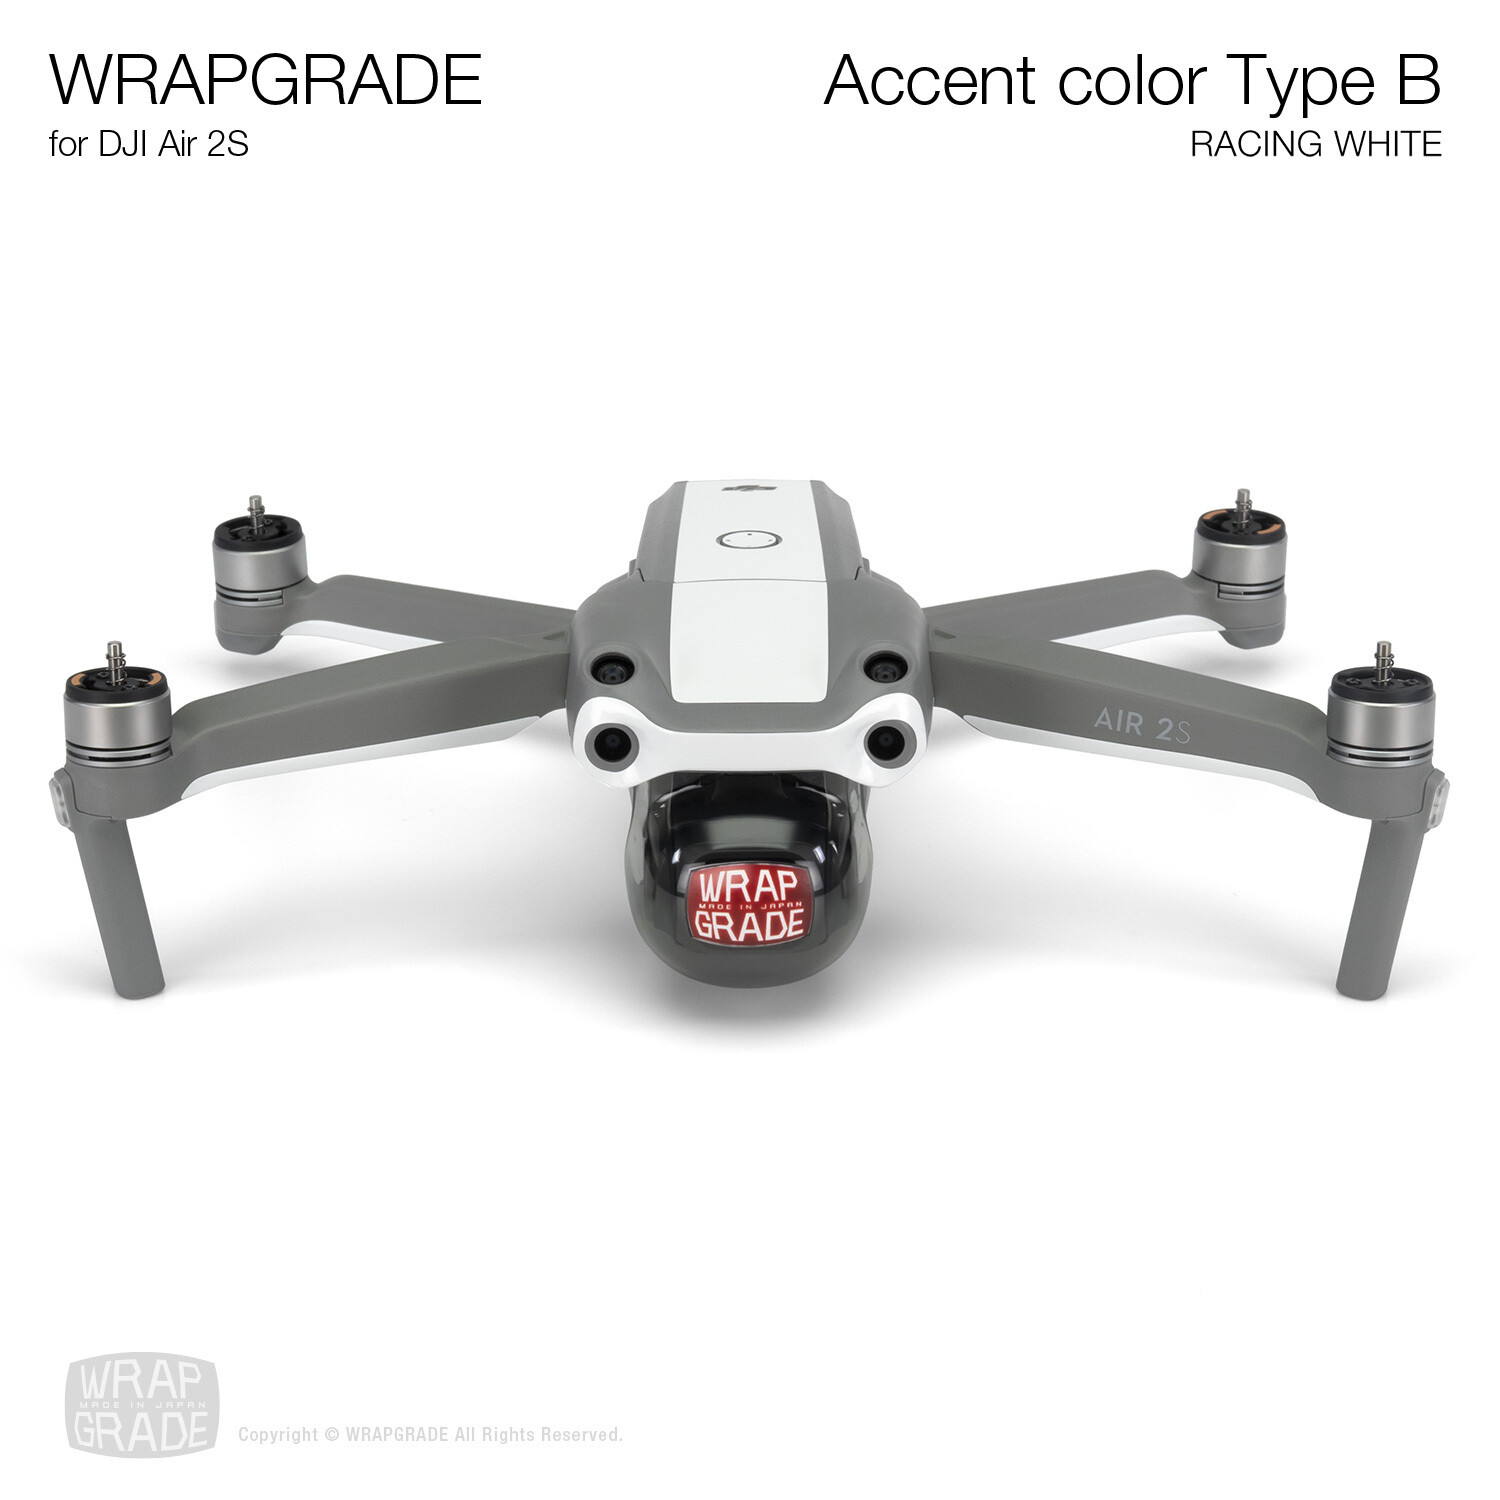 Wrapgrade Skin for DJI Air 2S | Accent Color B (RACING WHITE)